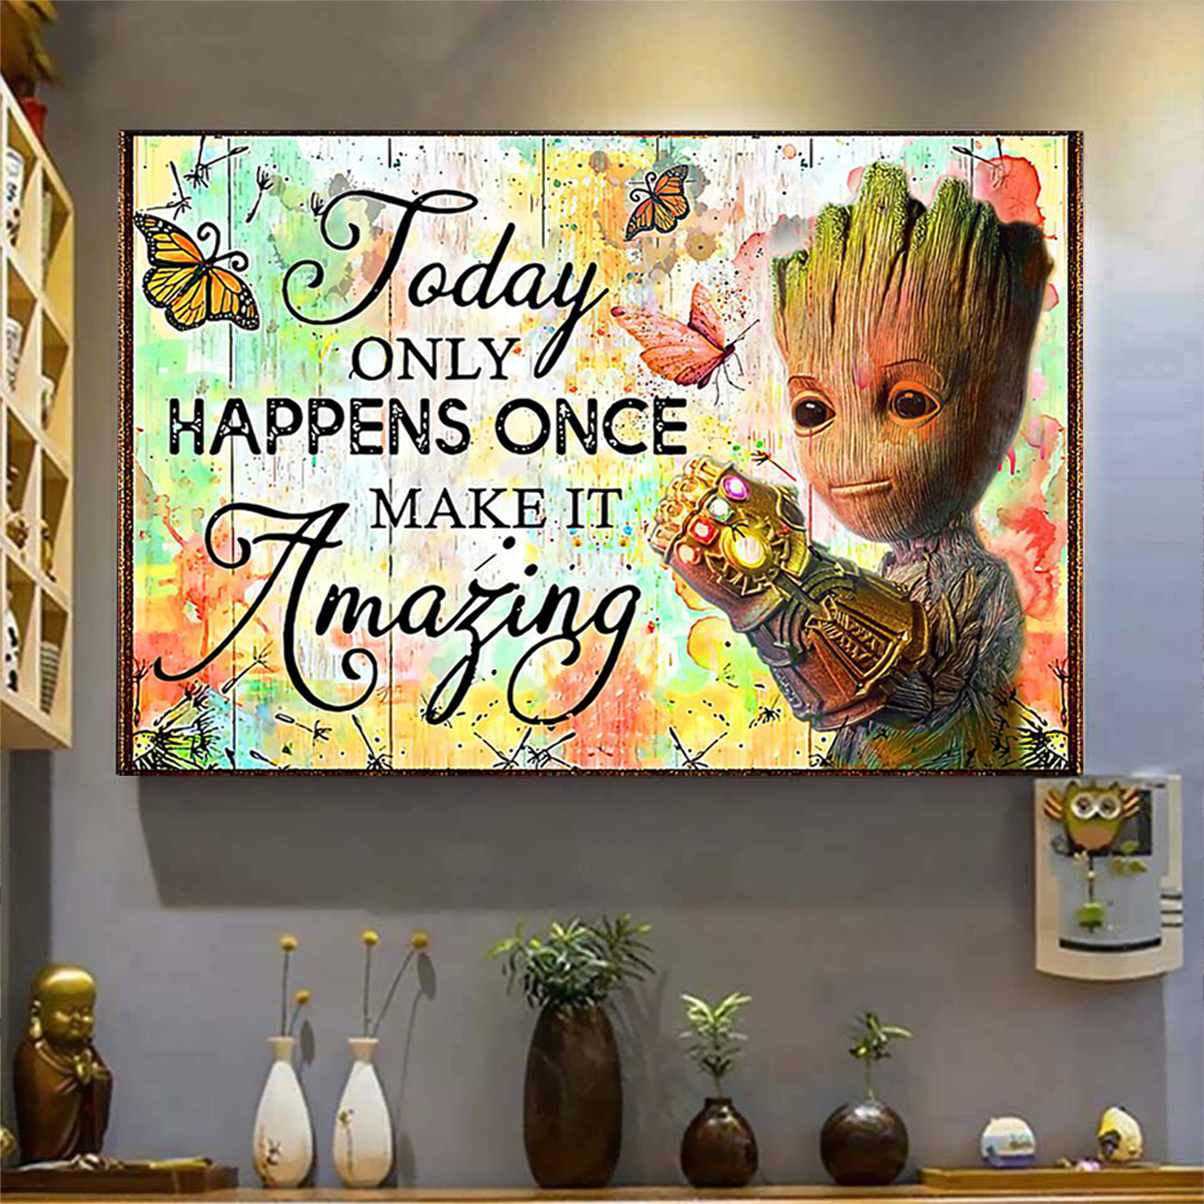 Groot today only happens once make it amazing poster A1